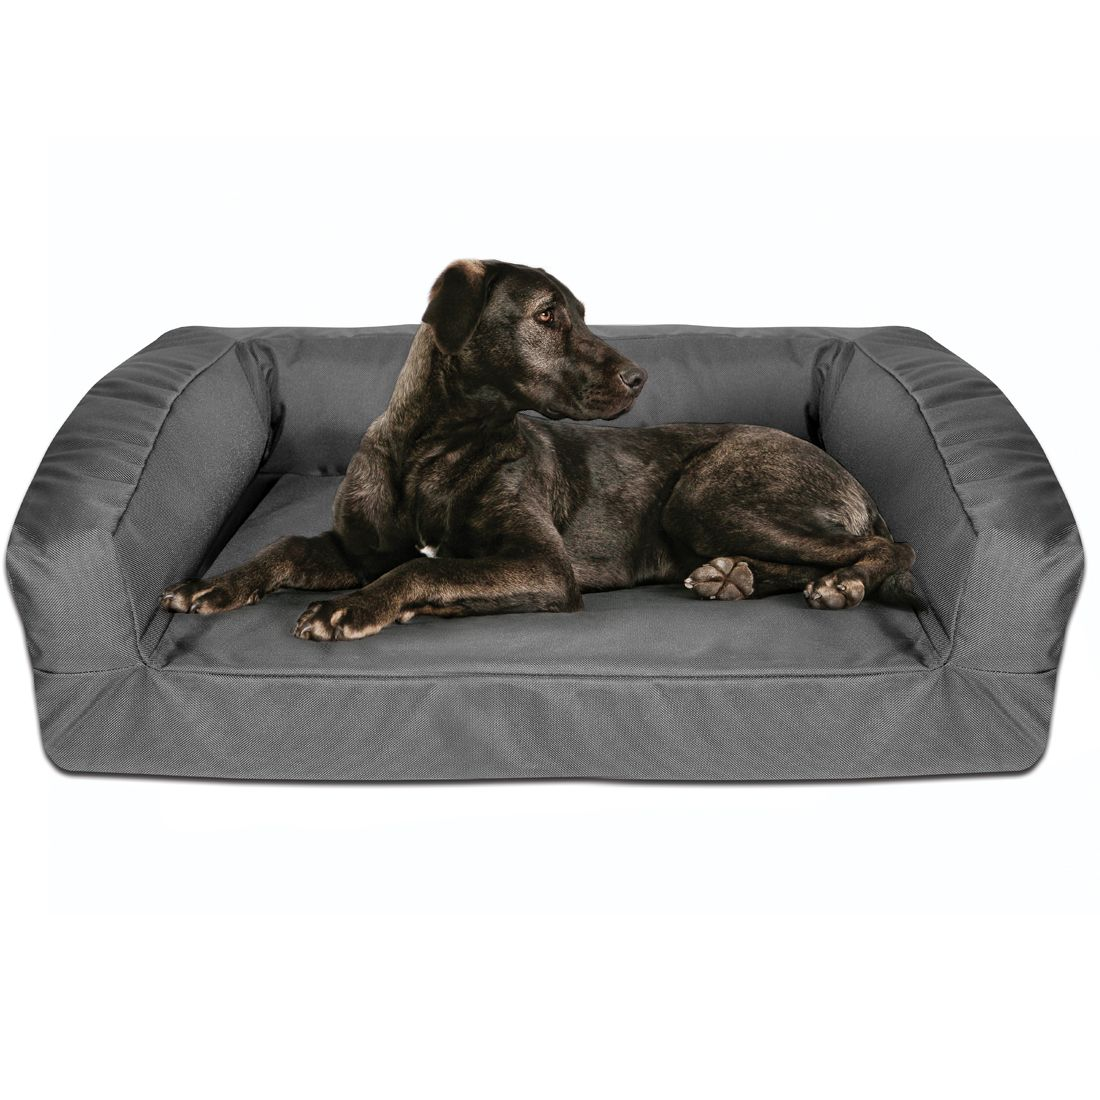 Choose the Kevlar Chew Resistant Bolster Dog Bed for